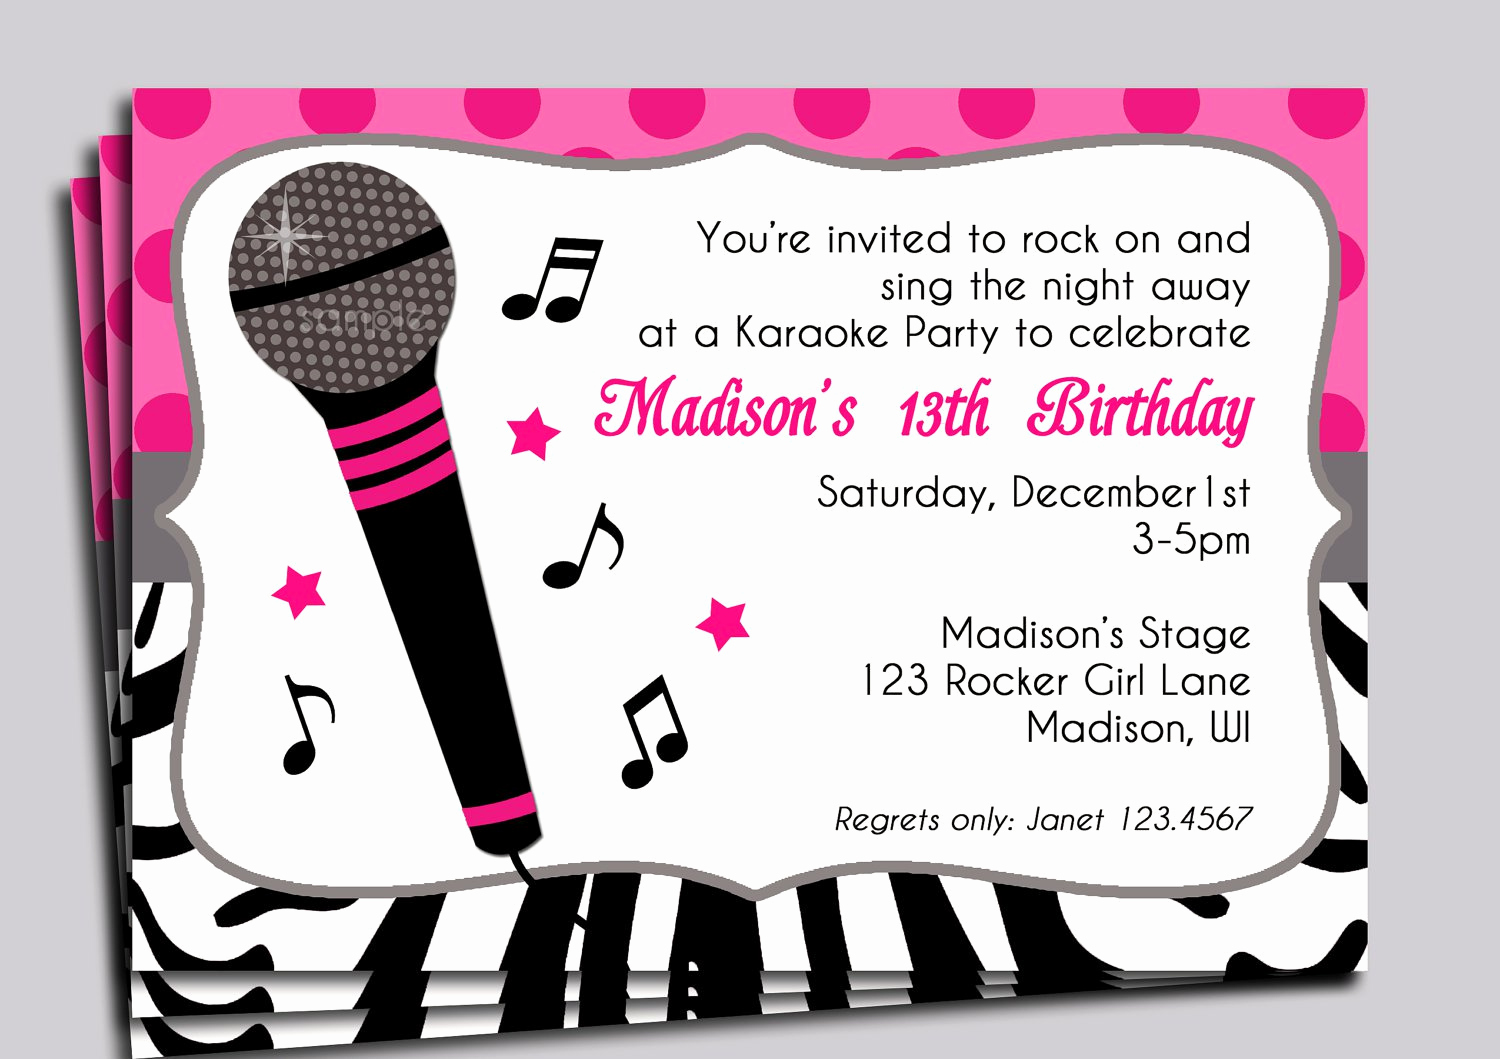 Karaoke Party Invitation Wording Lovely Music themed Birthday Party Invitations